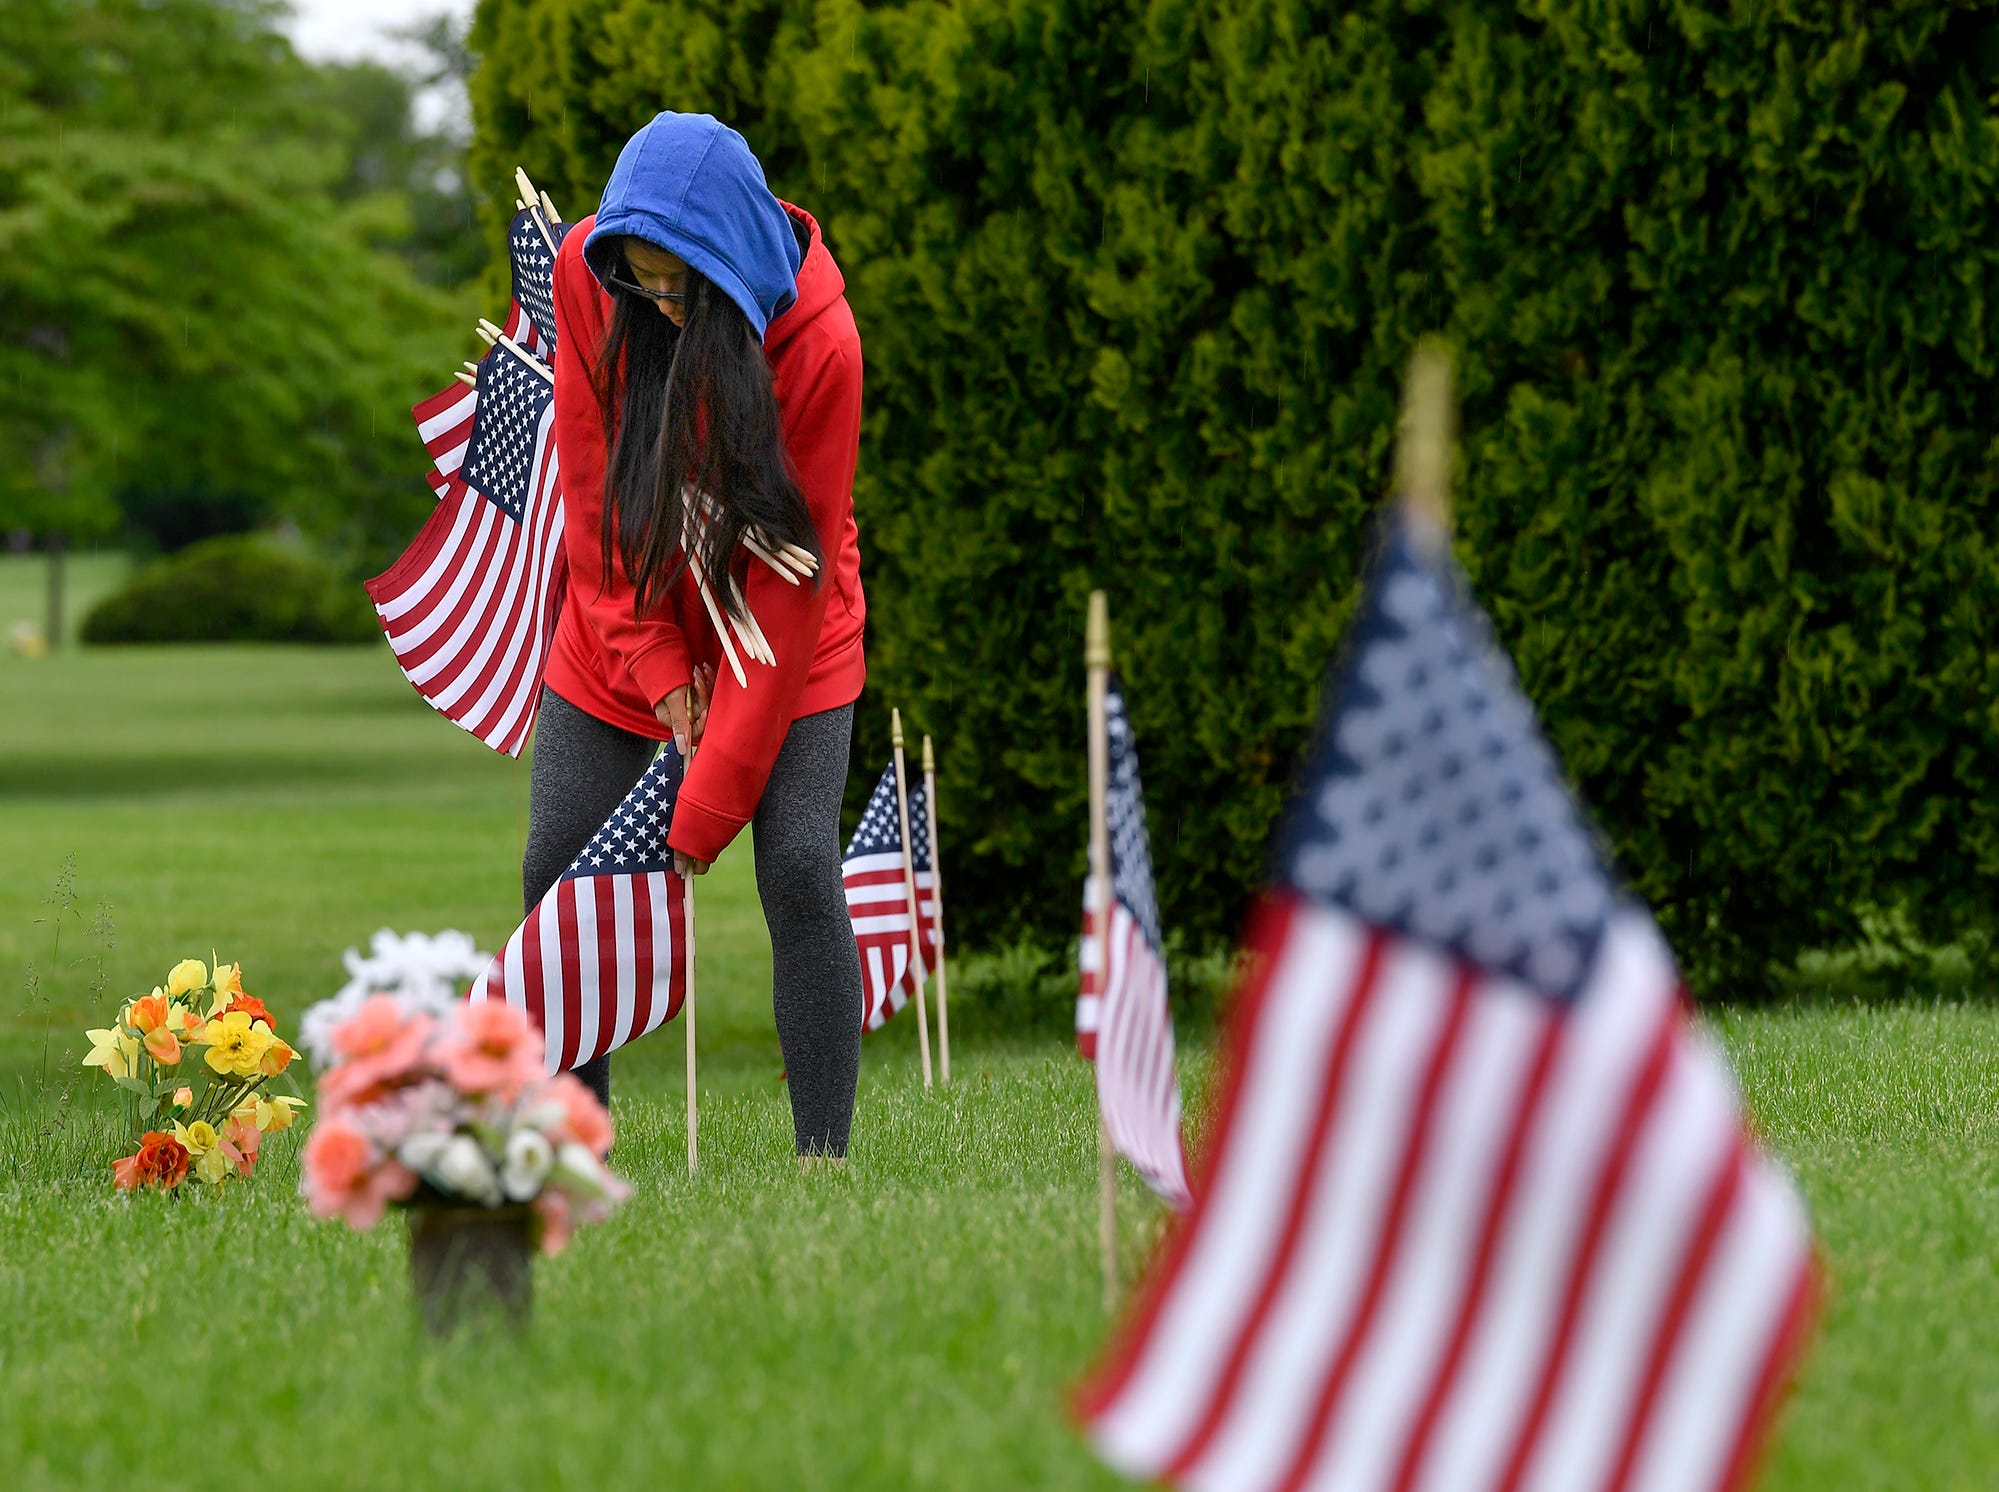 Tia Drebot, 17, helps Gold Star mother Deb Etheridge, not shown, place flags on veteran graves at Prospect Hill Cemetery in preparation for Memorial Day, Monday, May 13, 2019. Drebot and two other National Honors Society members from Dover High School assisted in the flag placing.John A. Pavoncello photo